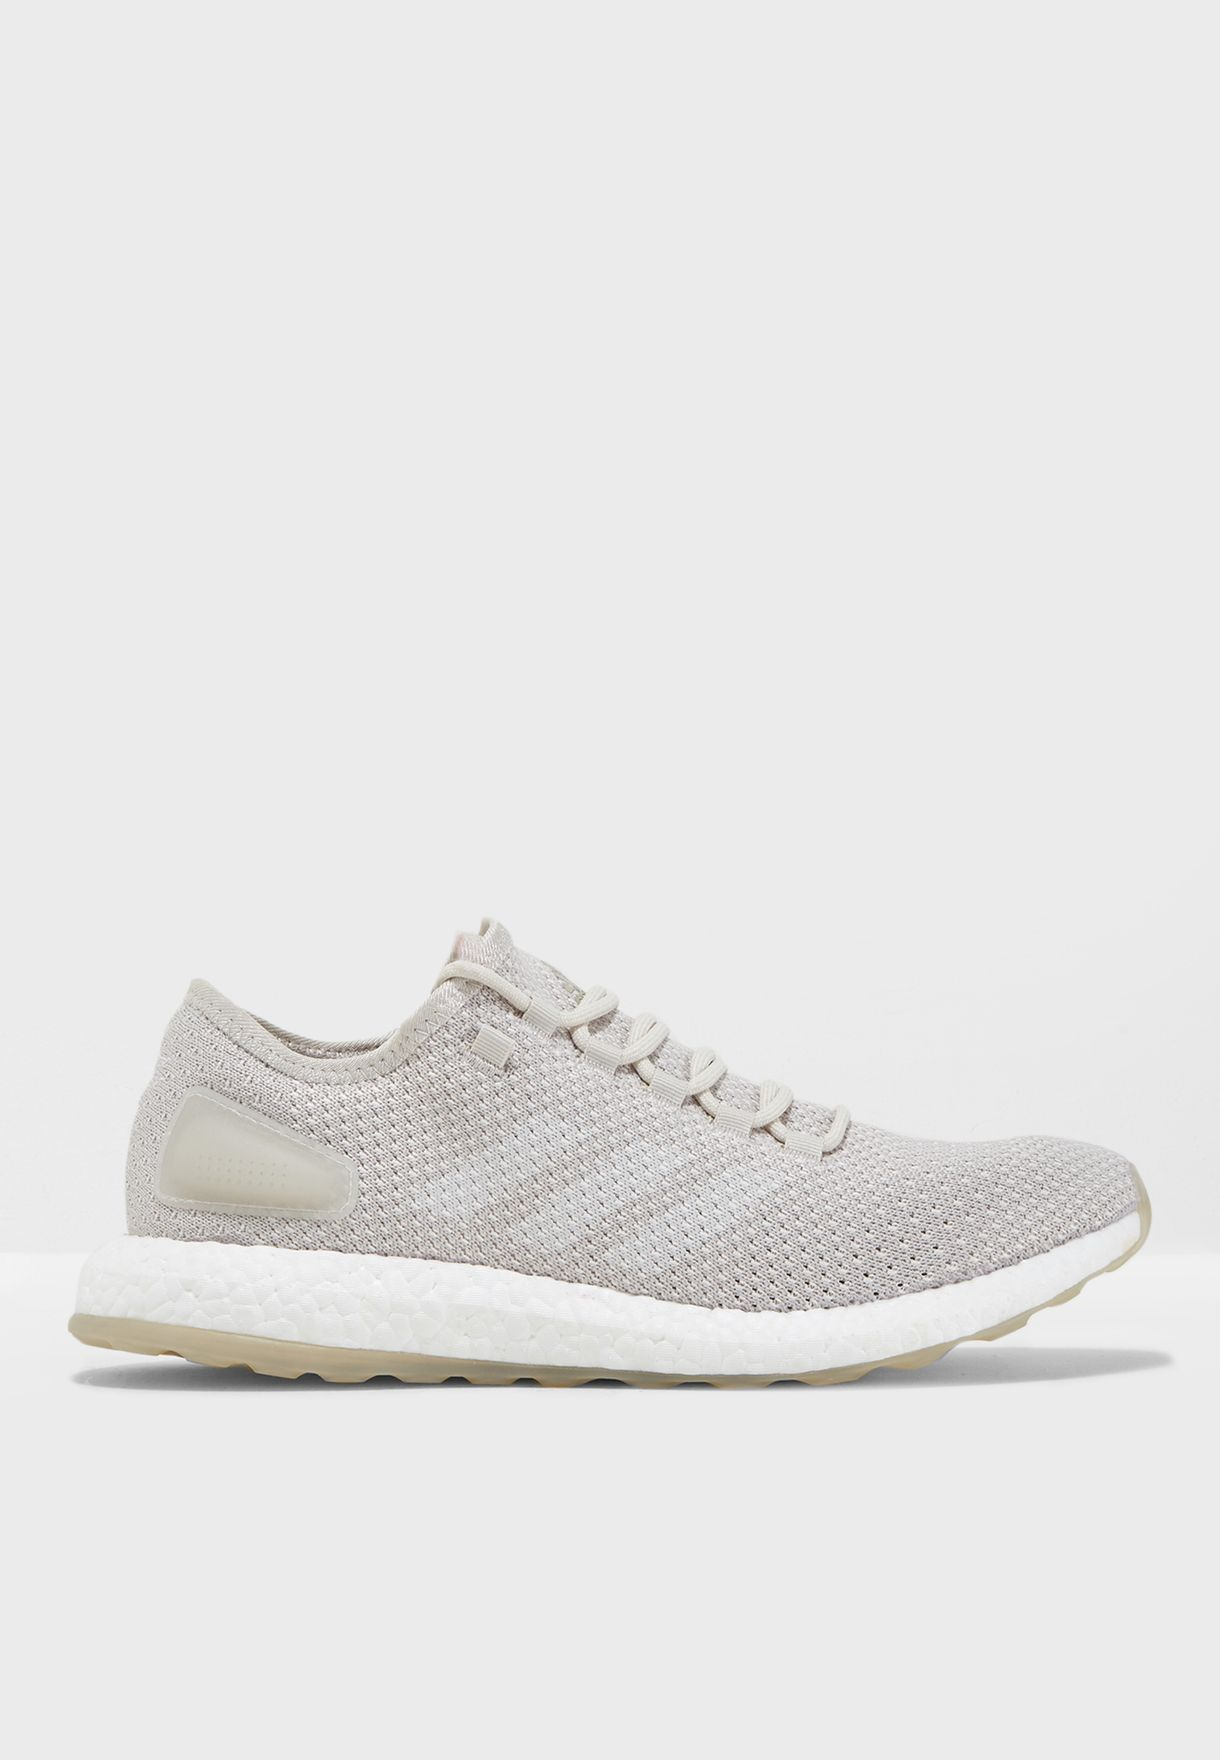 buy online 960c0 383fe Shop adidas grey Pureboost Clima BY8895 for Men in UAE - AD4